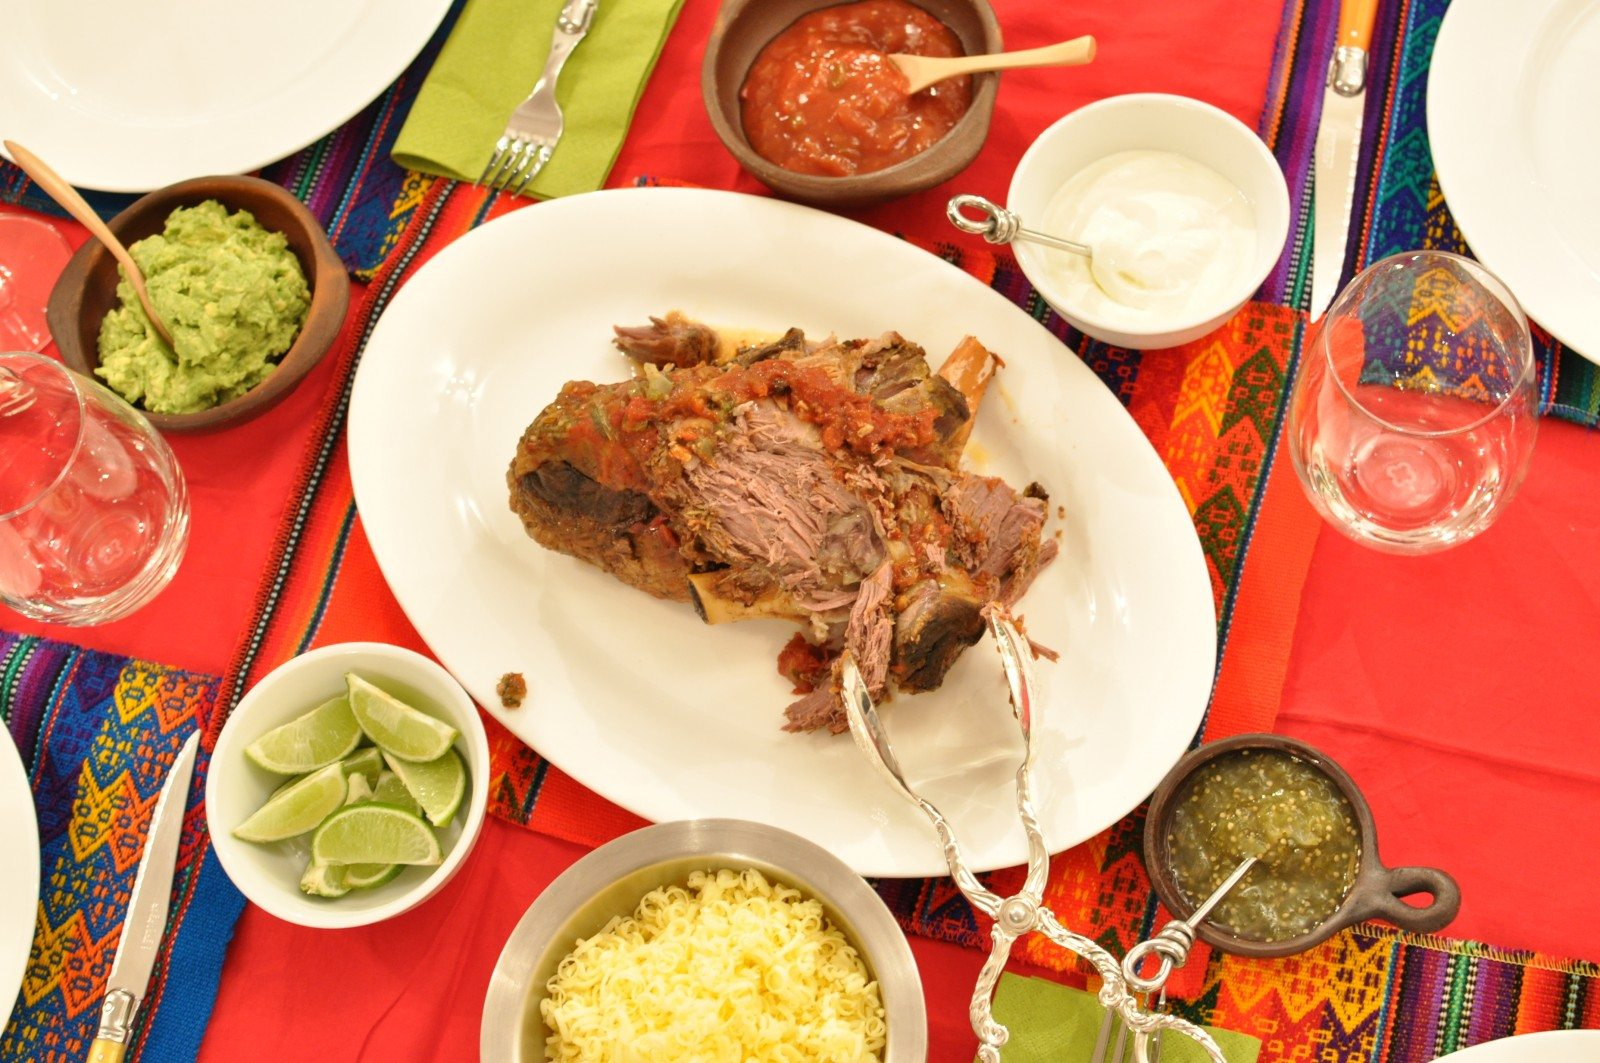 Slow-cooked Mexican leg of lamb